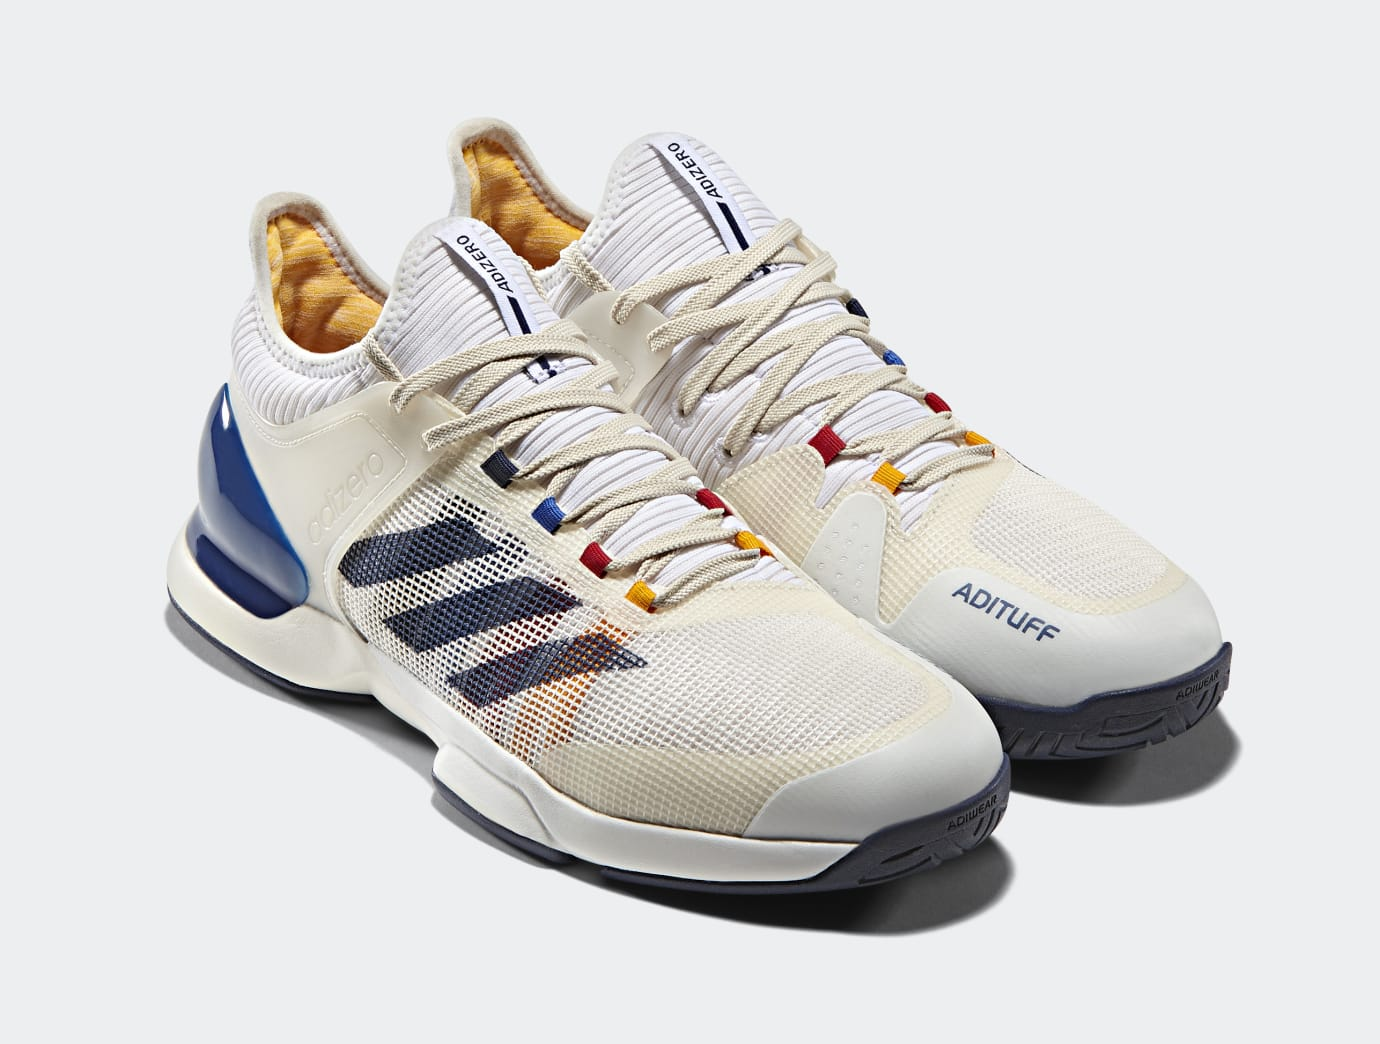 d24327742f557 Image via Adidas Adidas Tennis by Pharrell Ubersonic 2.0 (Pair)